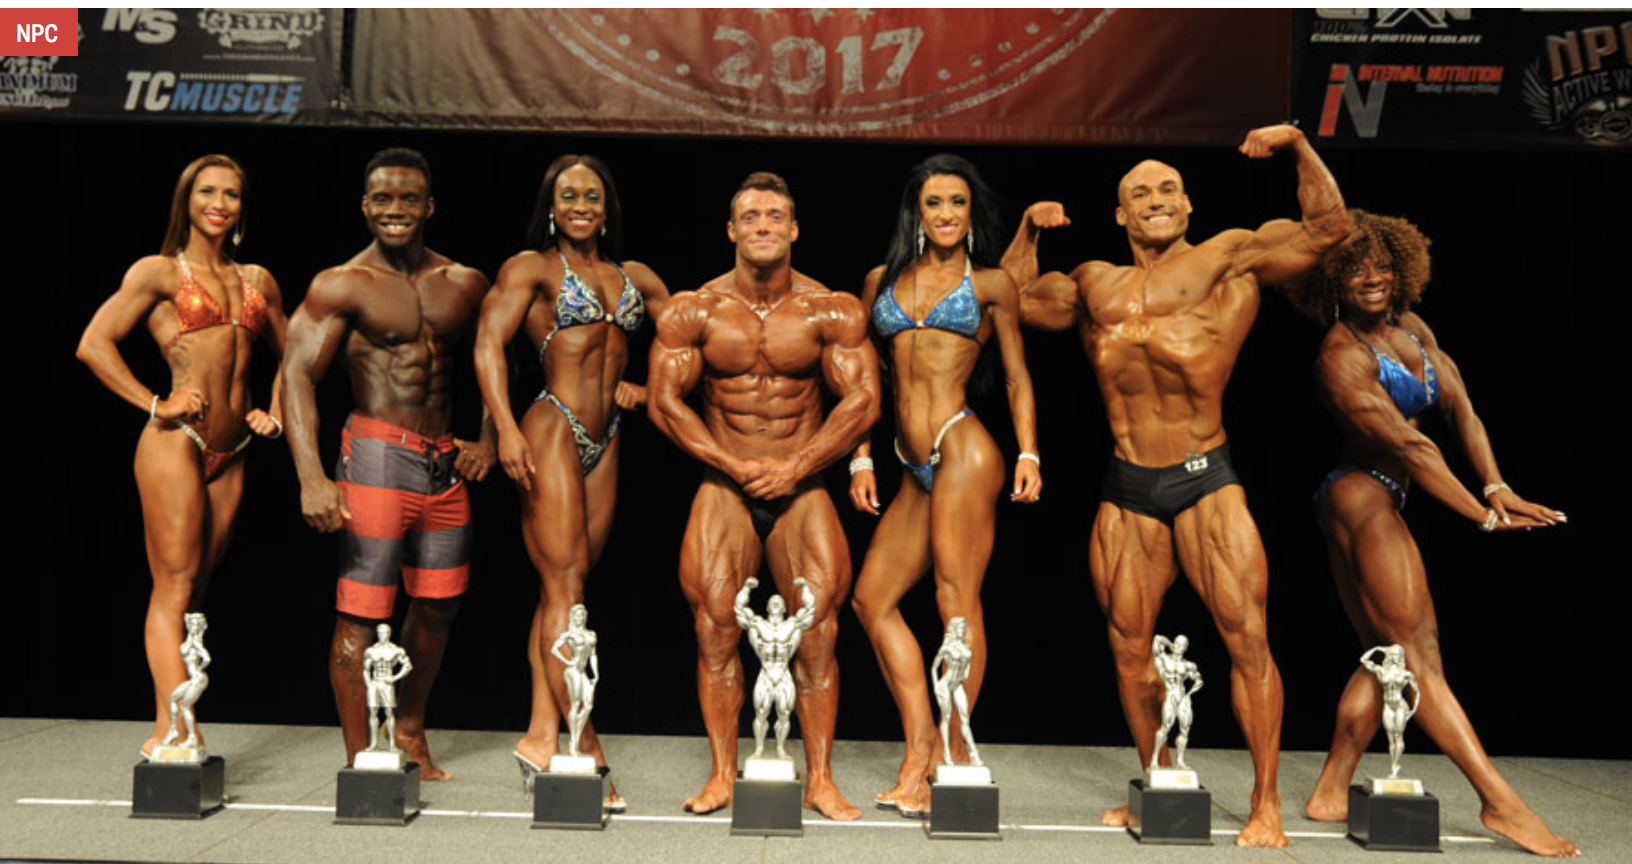 NPC CONTEST SPOTLIGHT: 2018 NPC Junior USA Bodybuilding Championships: May 18-19, 2018